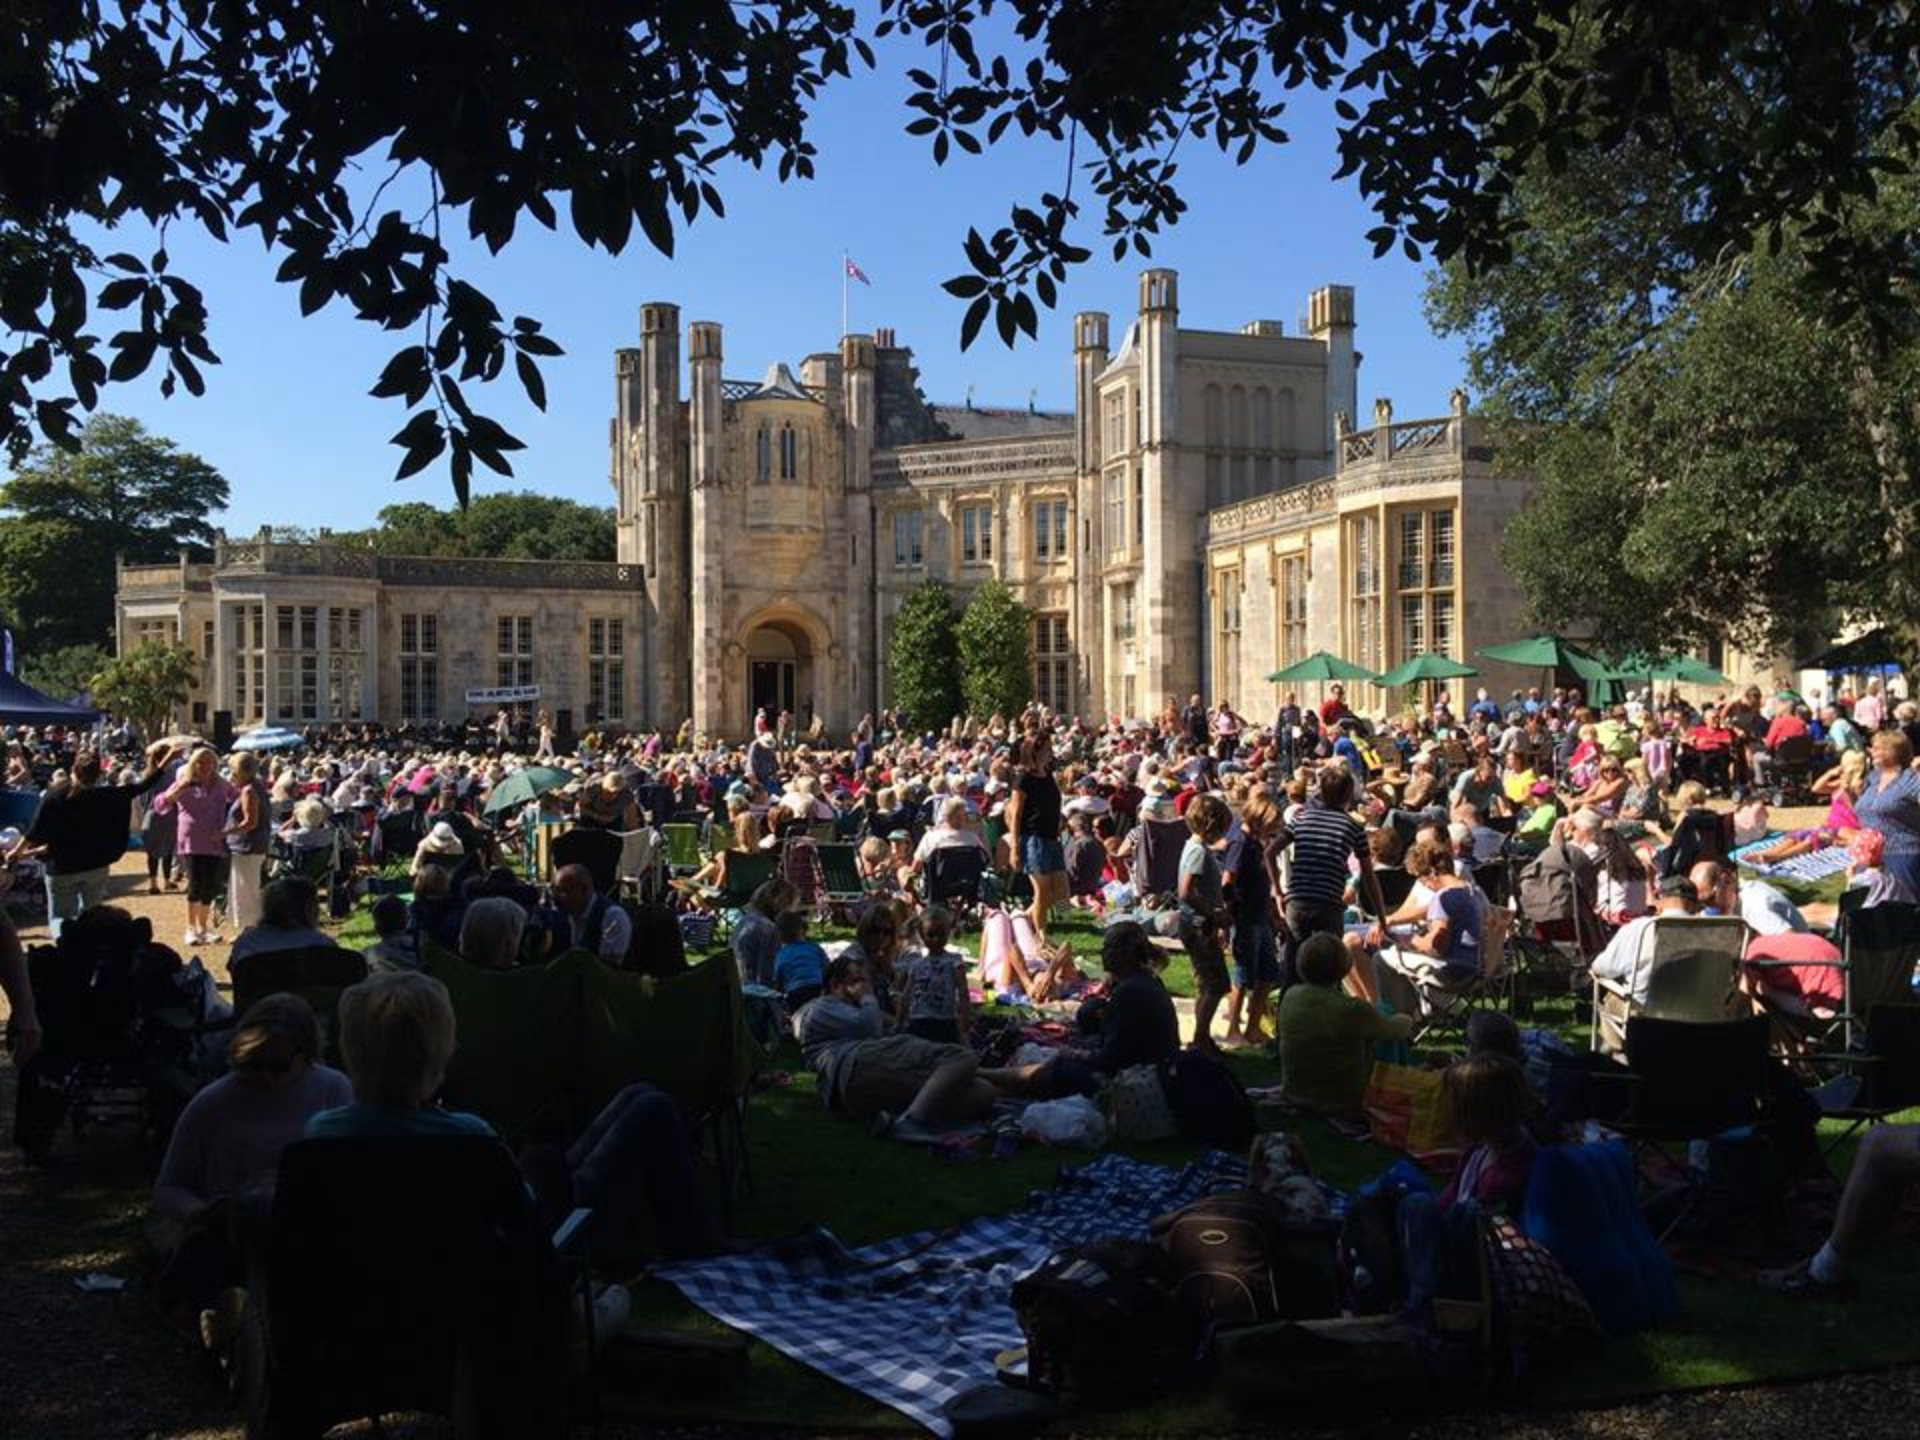 Large gathering of the public watching a live outdoor event at Highcliffe Castle on the grassy lawn